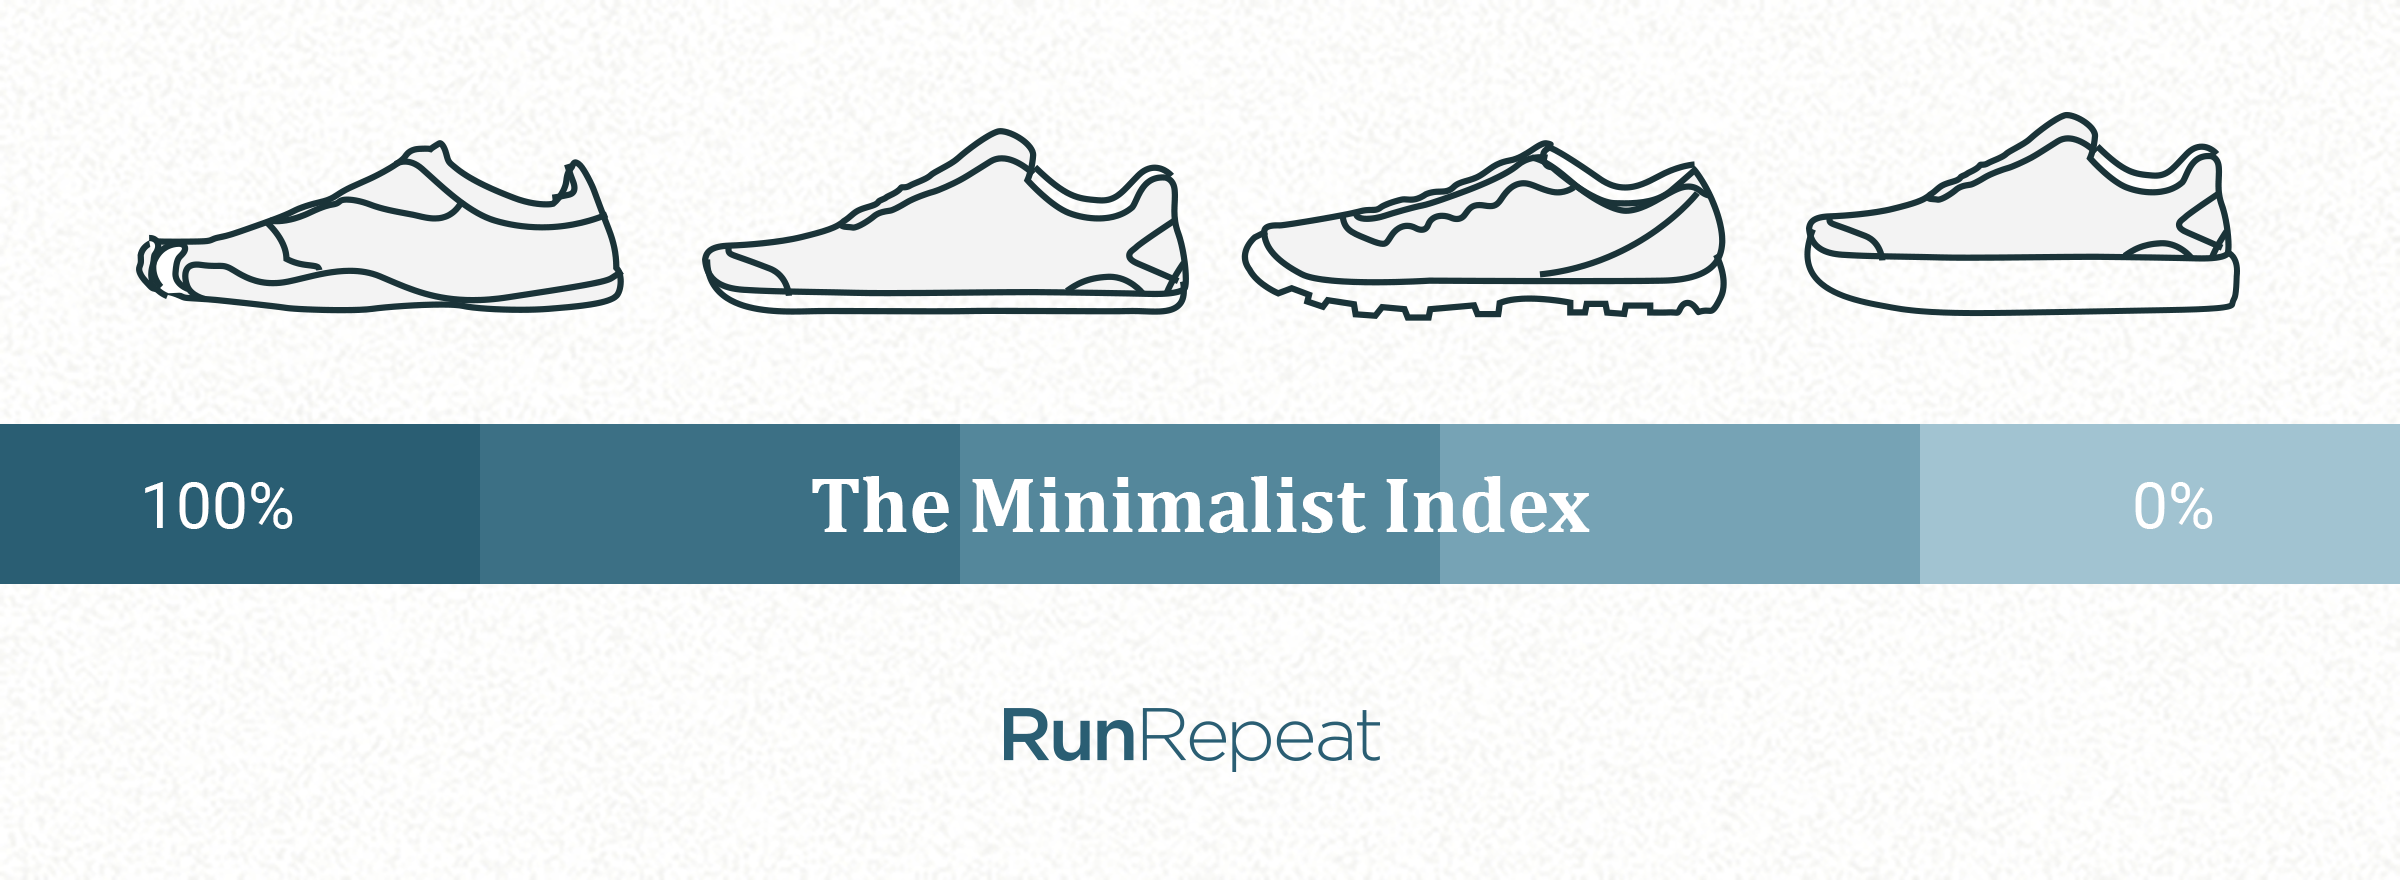 the-minimalist-index.png